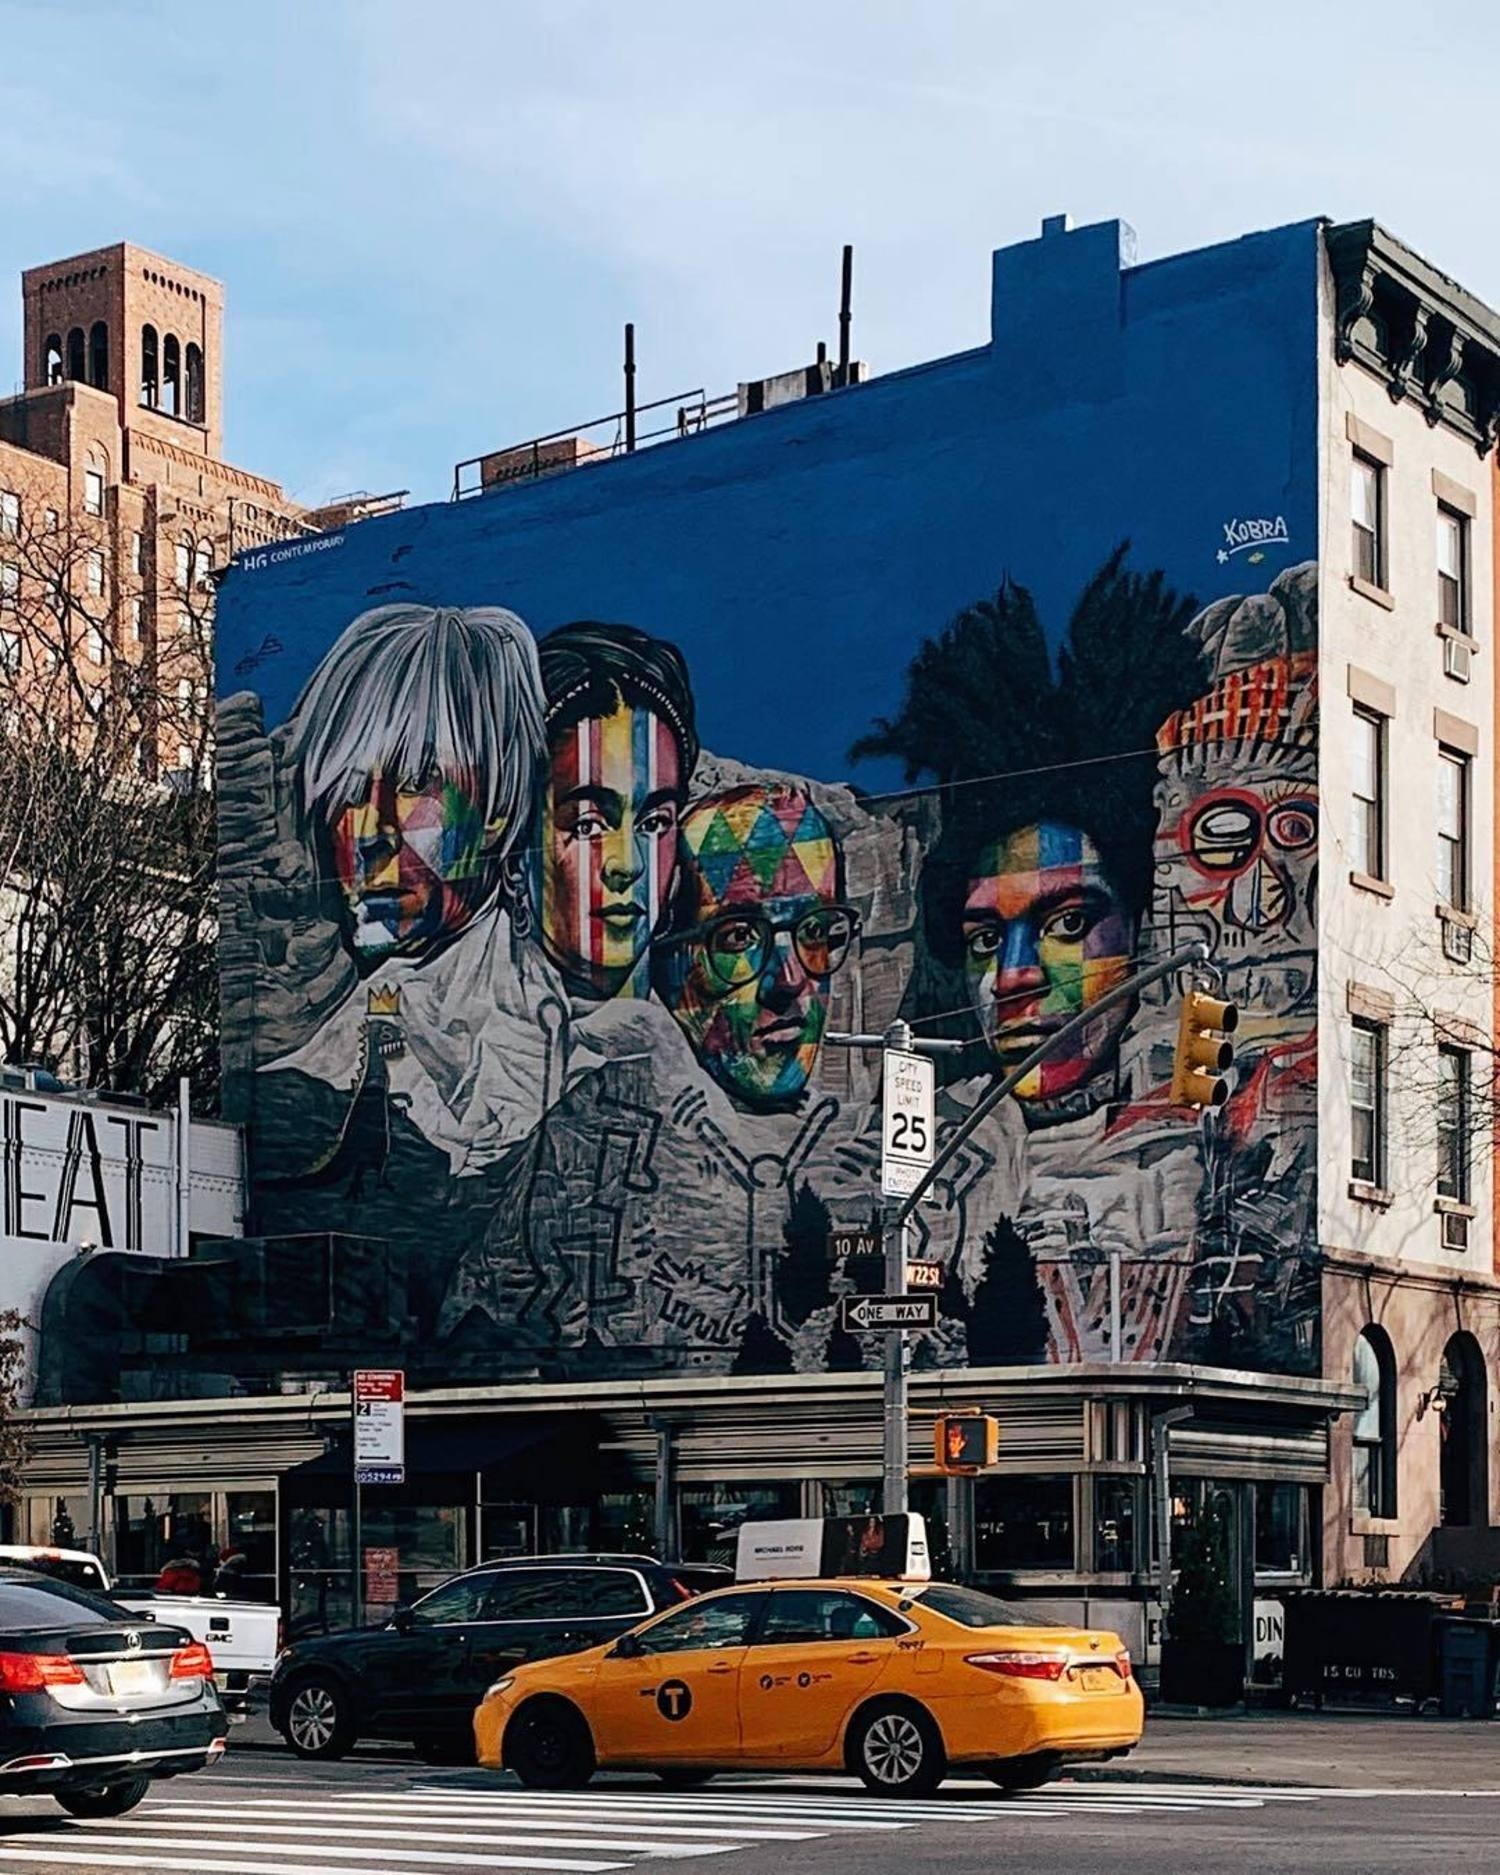 Mount Rushmore composed by Andy Warhol, Frida Khalo, Keith Haring and Jean-Michel Basquiat by Brazilian artist Eduardo Kobra 🎨